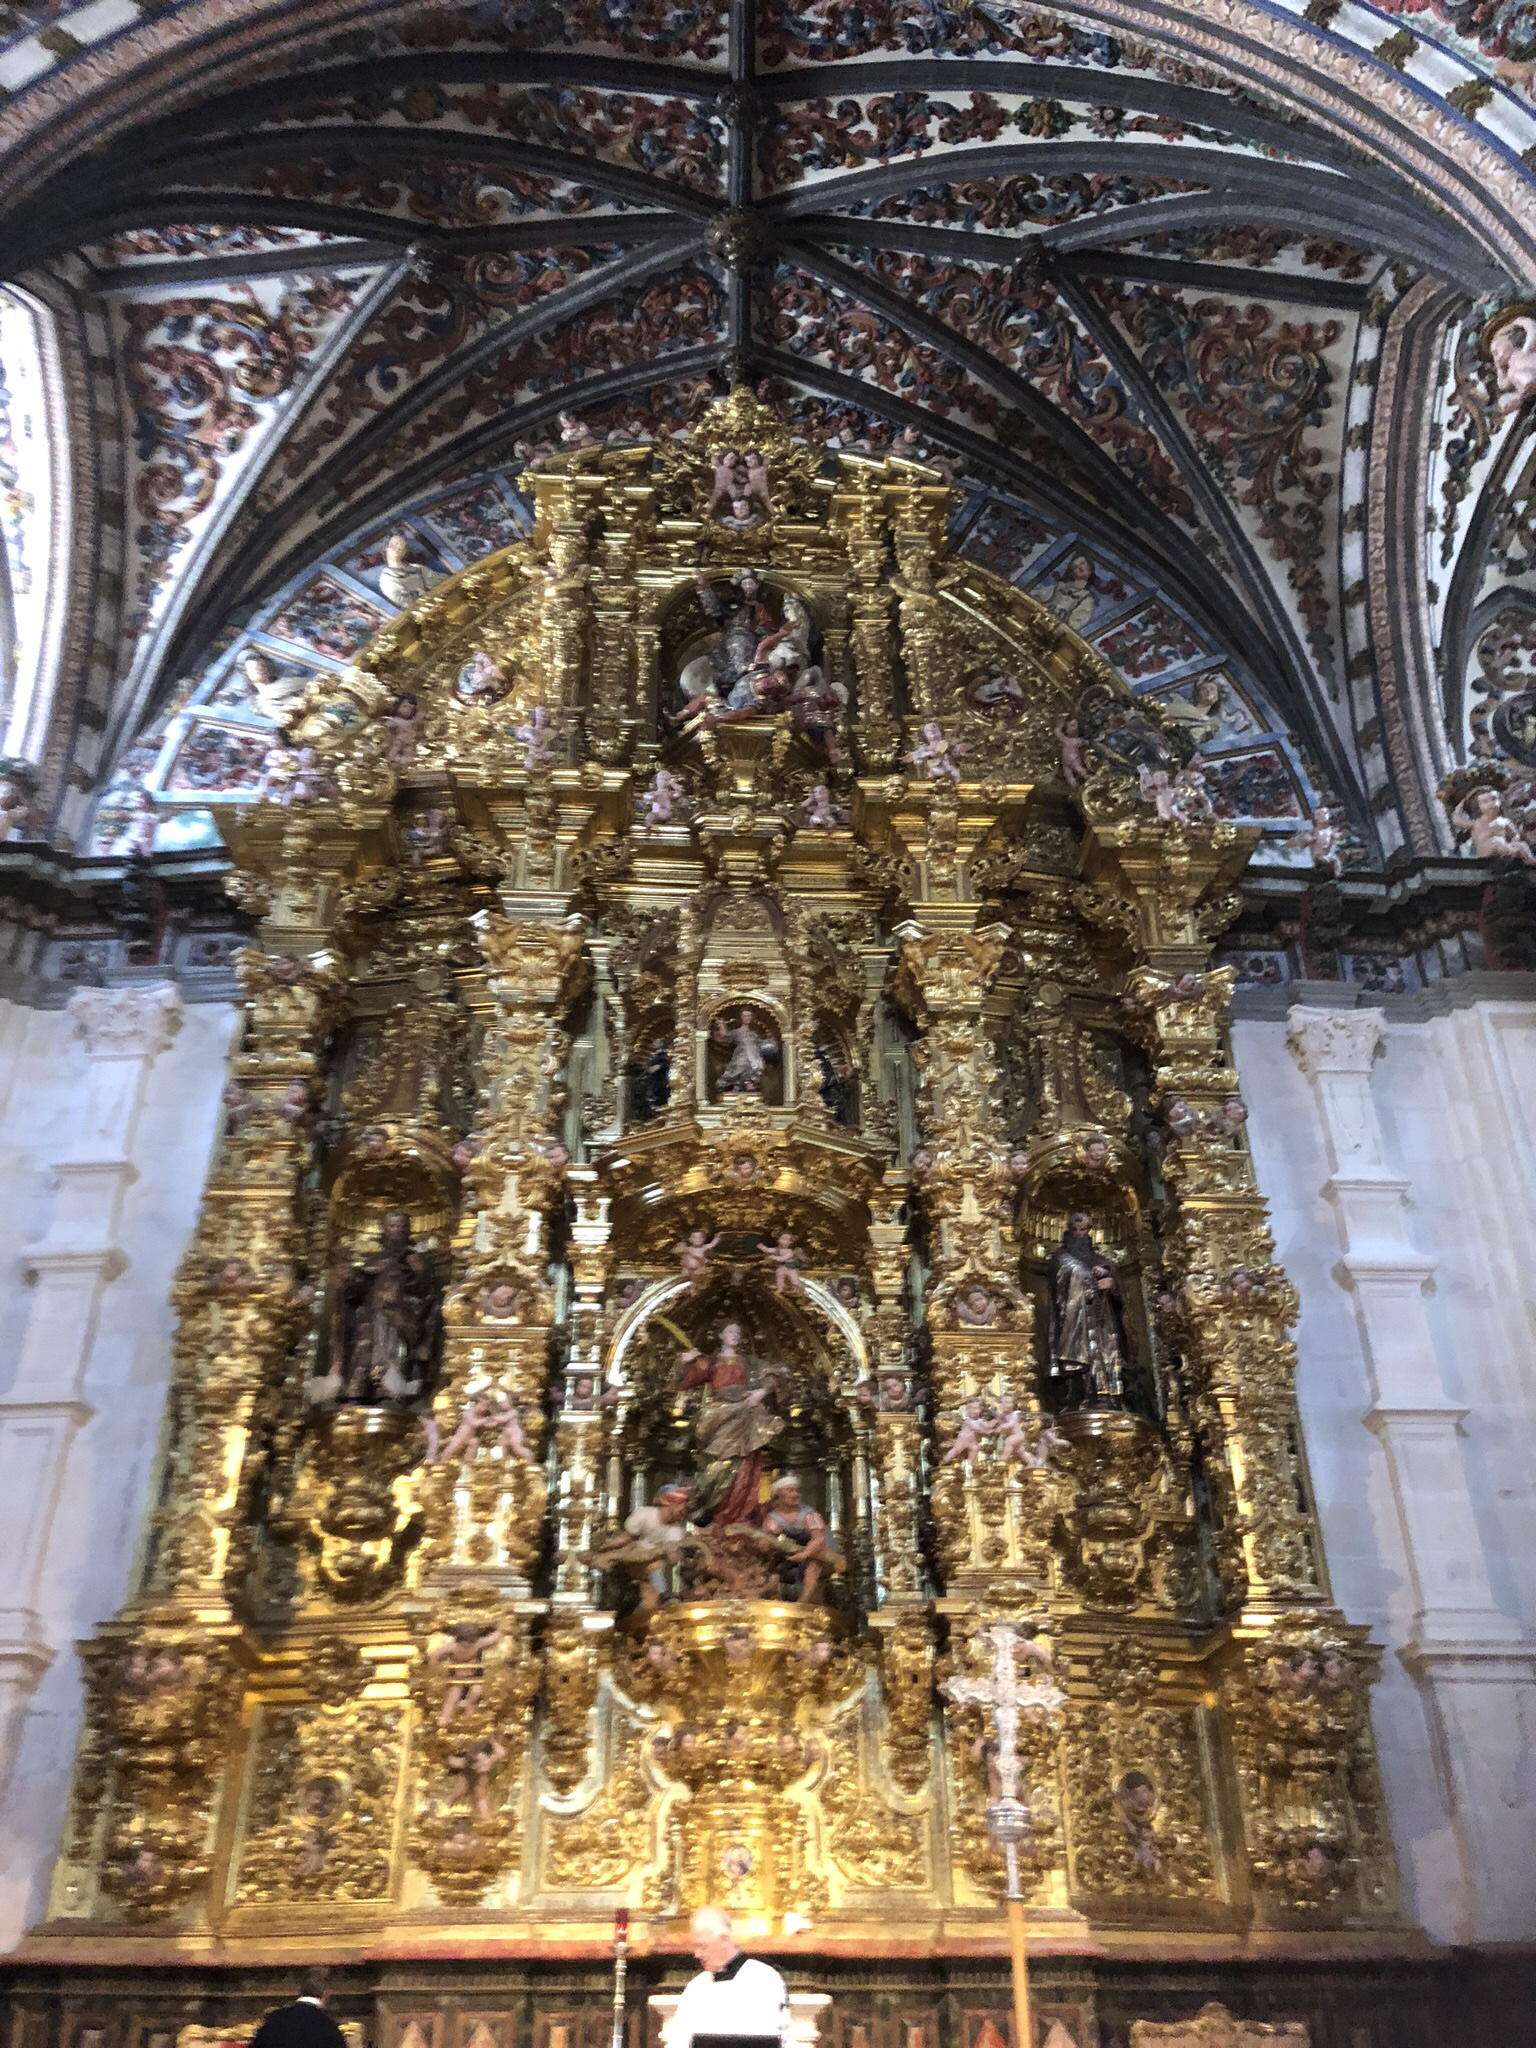 Altarpiece in the Cathedral in Burgos